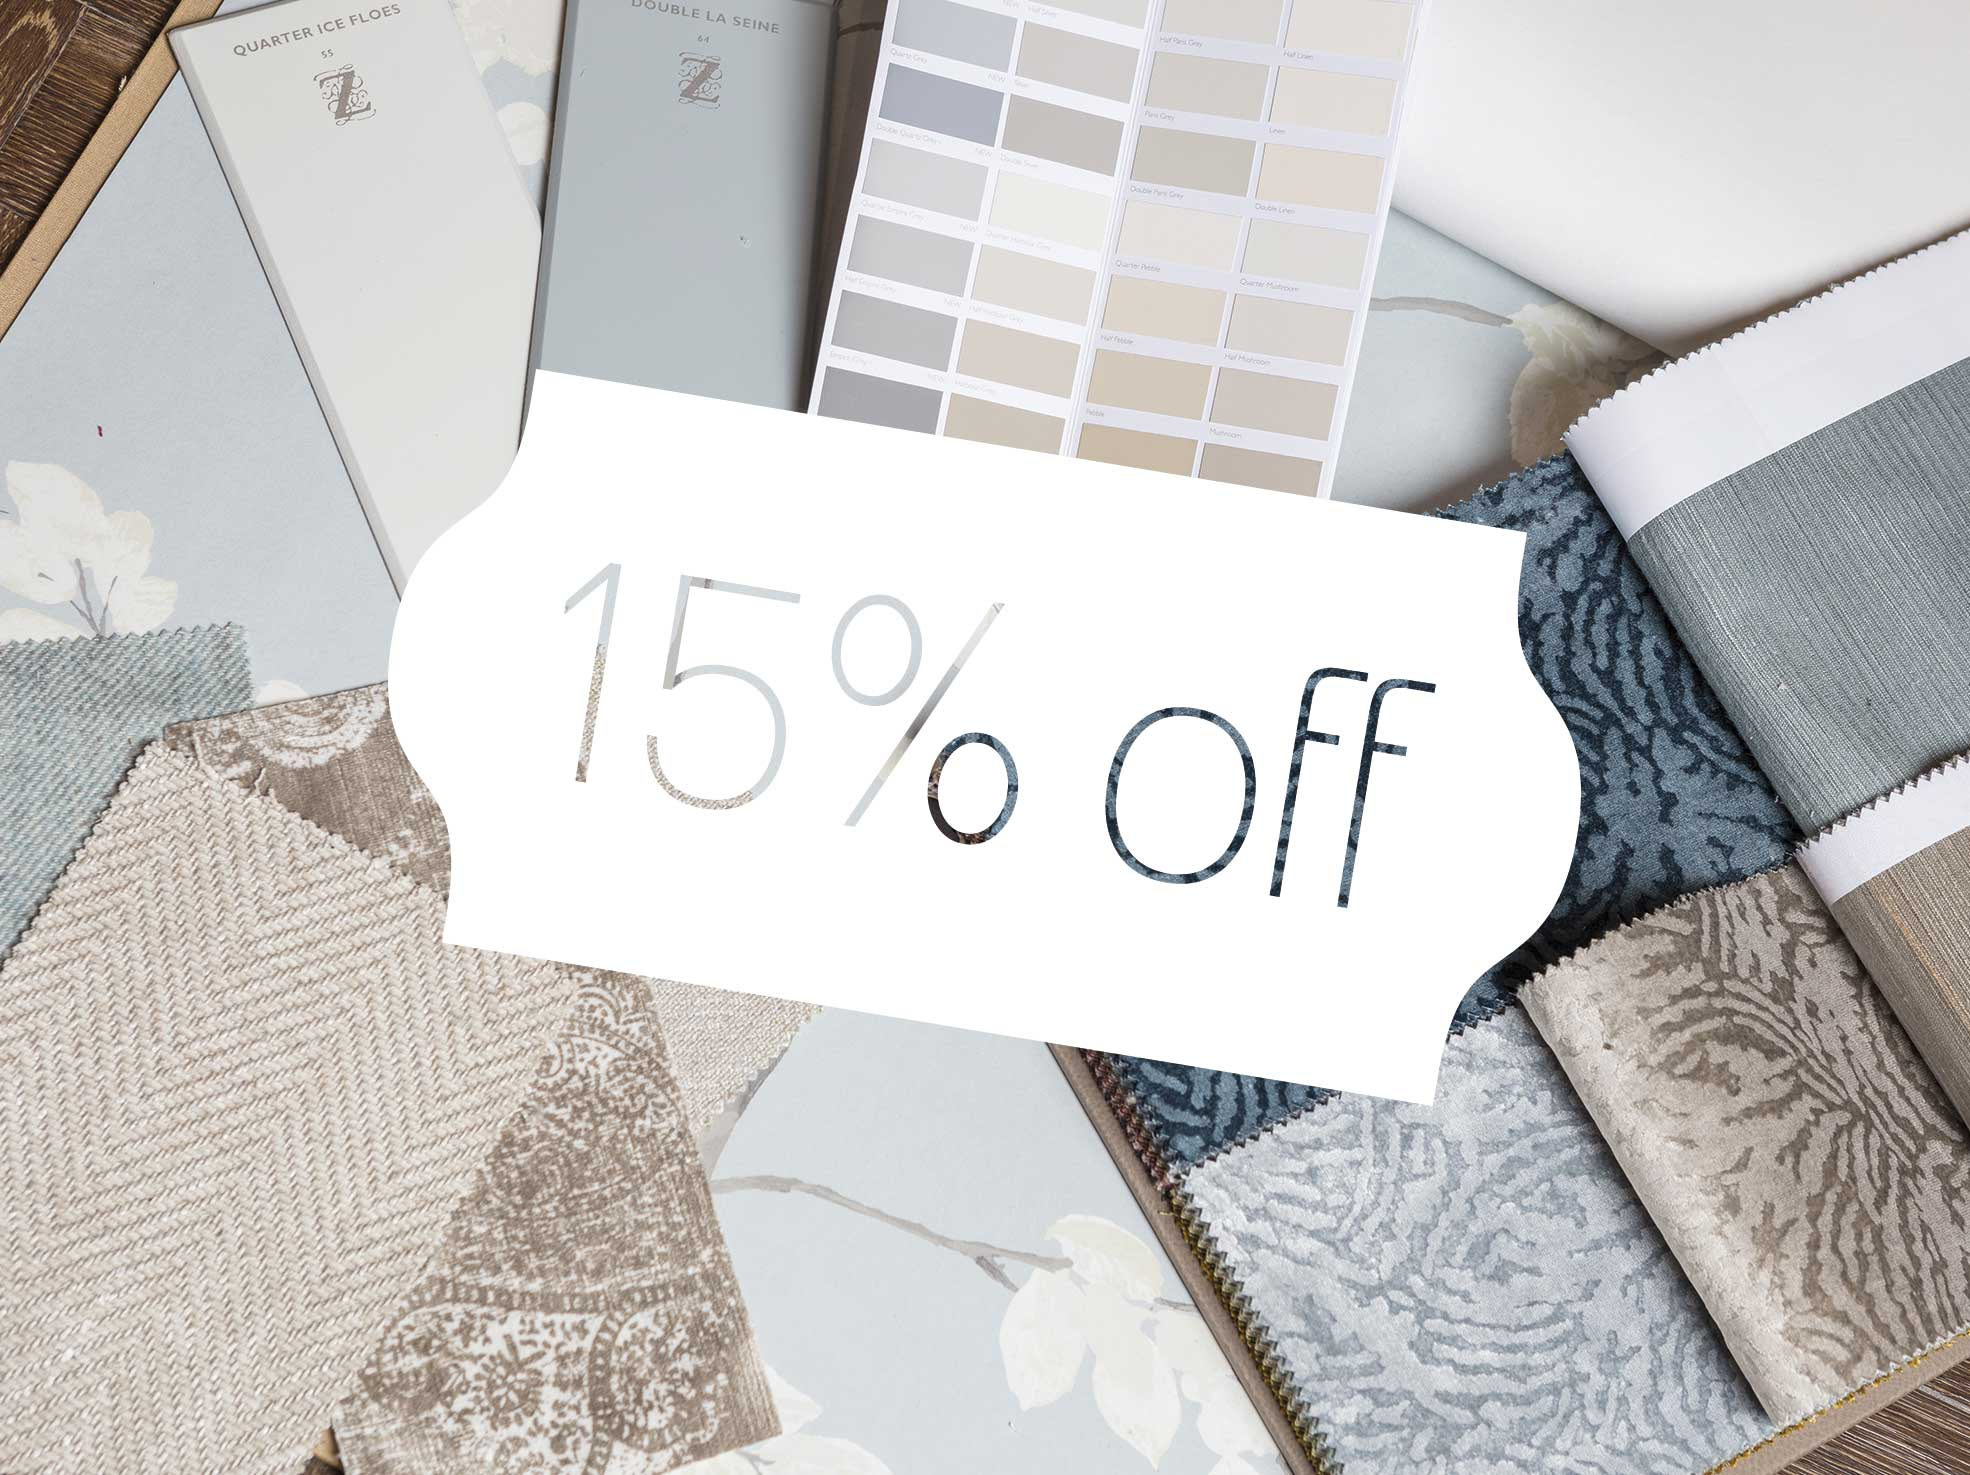 This summer, there's 15% off in our showroom